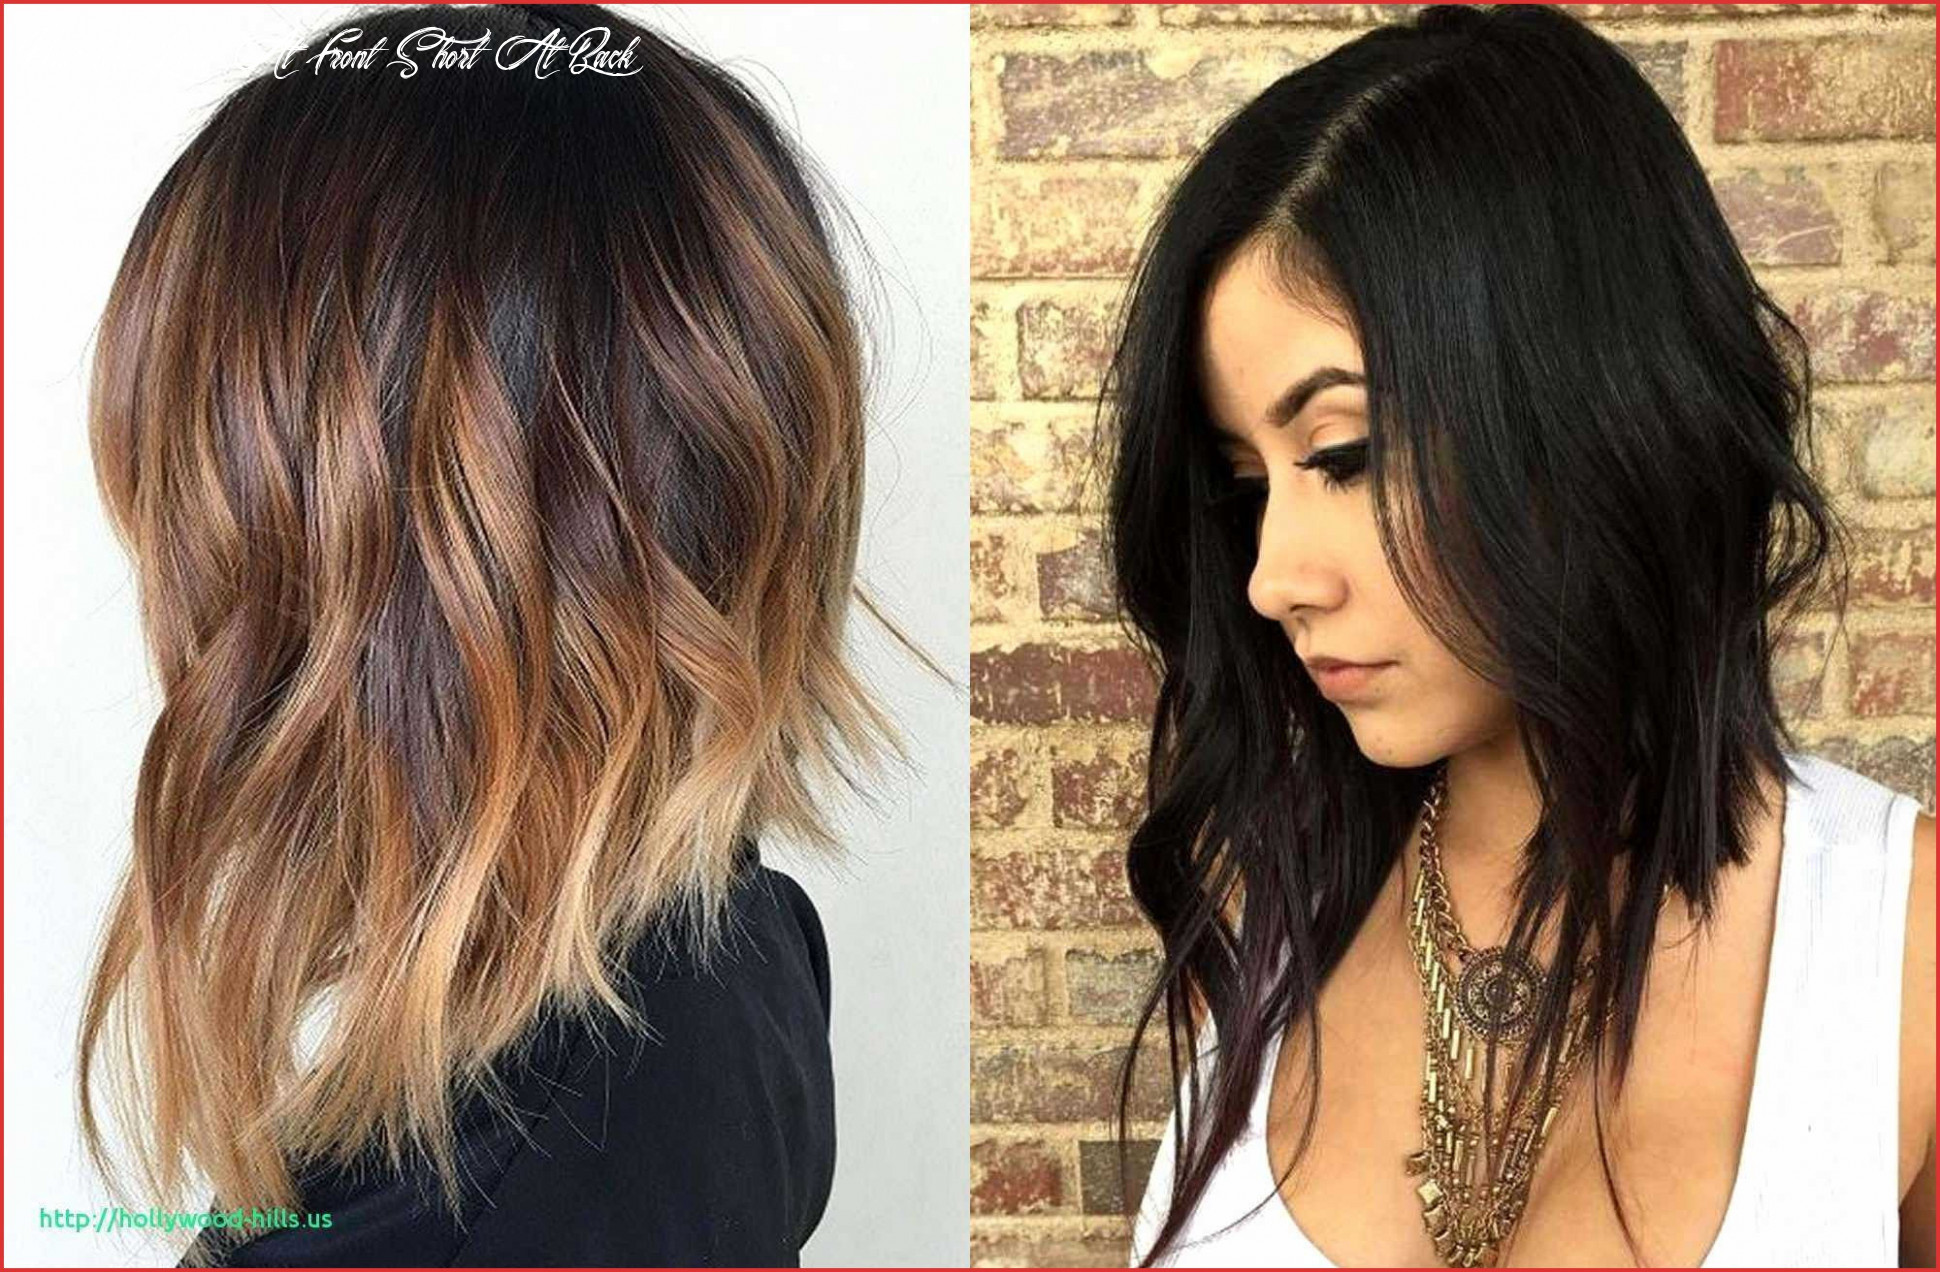 Hairstyles long in front short in back pictures best of long